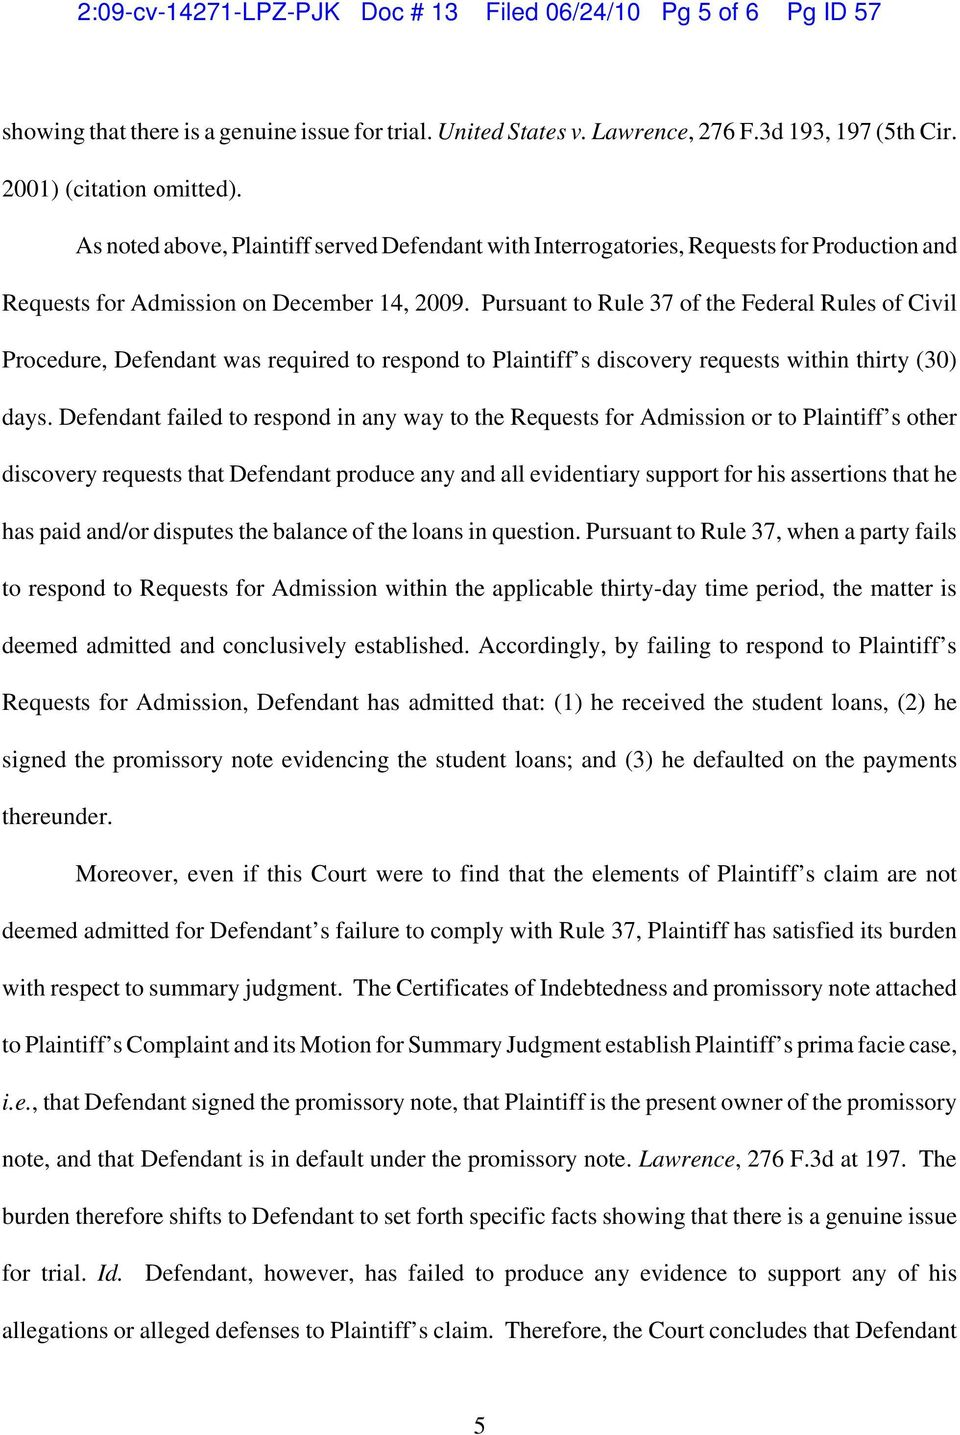 Pursuant to Rule 37 of the Federal Rules of Civil Procedure, Defendant was required to respond to Plaintiff s discovery requests within thirty (30) days.